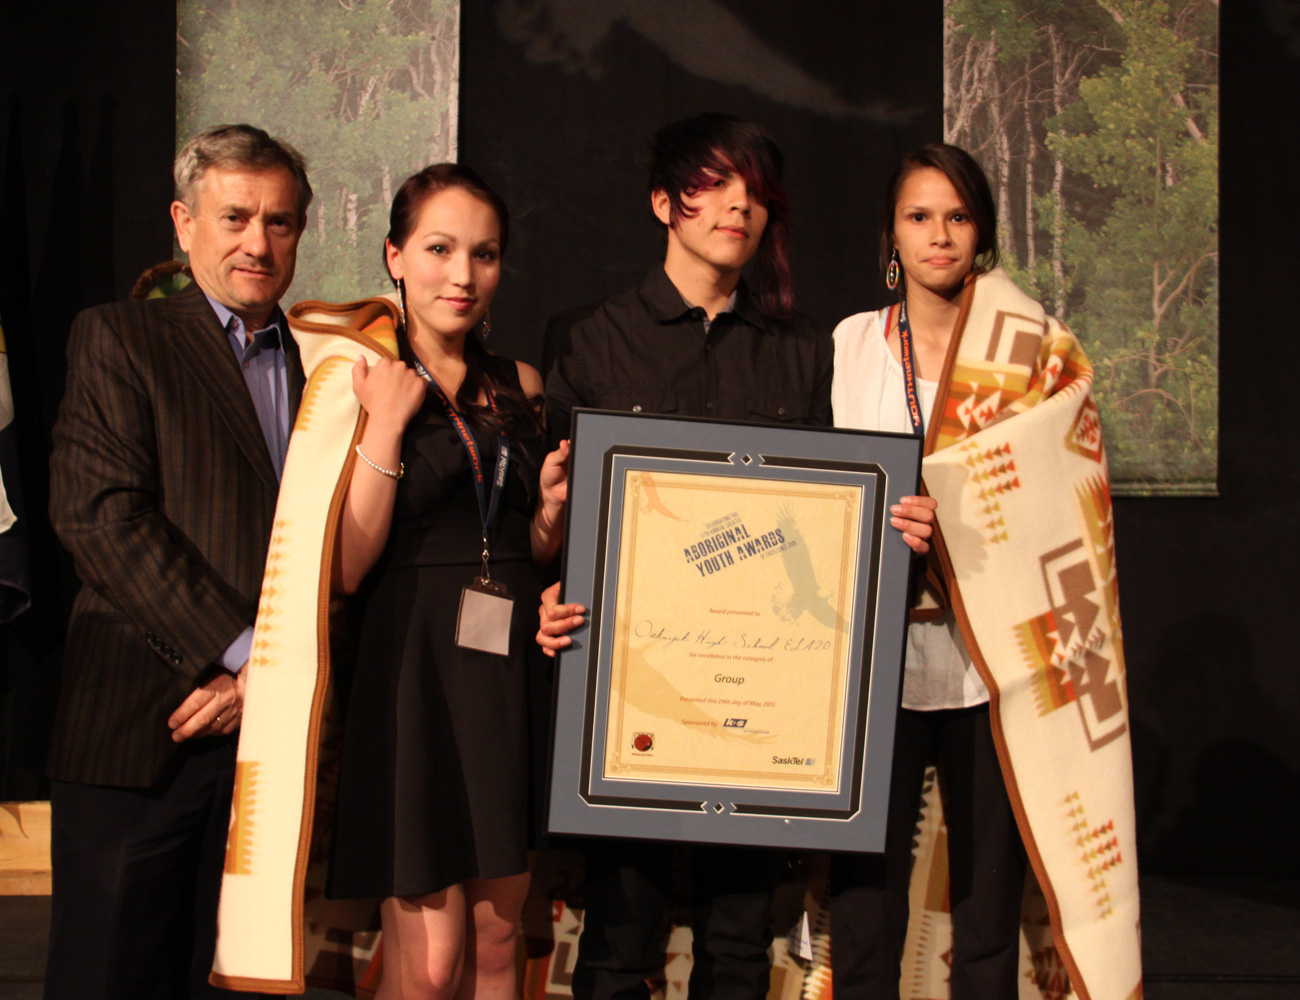 The Oskayak High School ELA 20 Group received the Group award from Eric Cline Vice President at K+S Potash Canada.